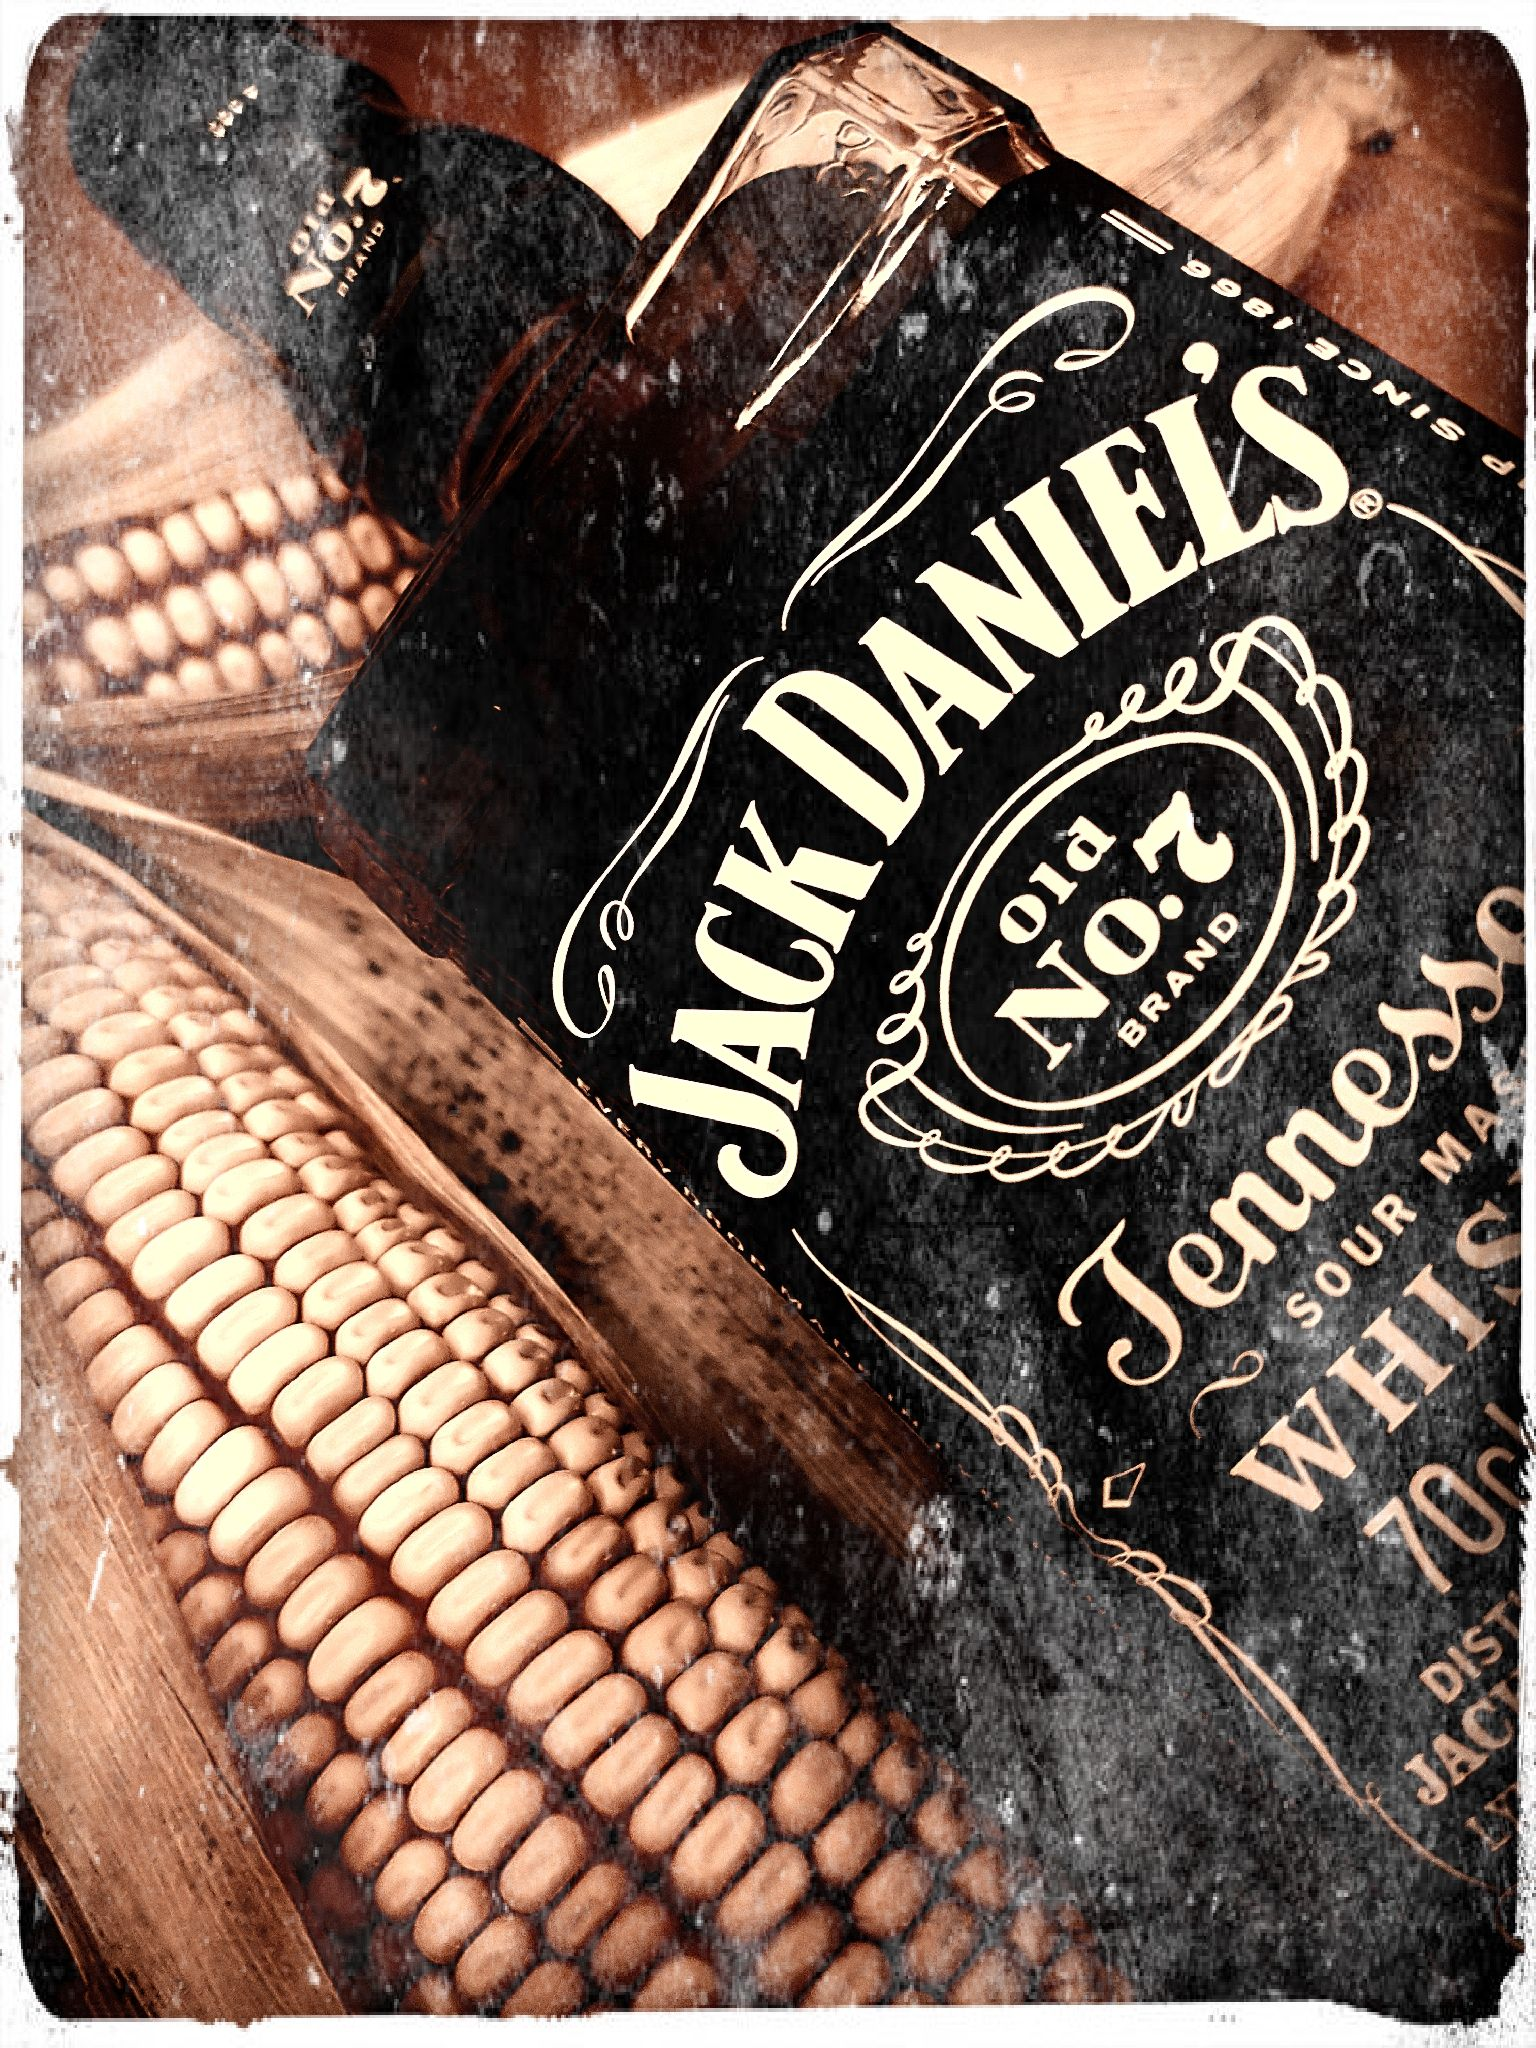 Jack Daniel's Old No. 7 Tennesse Whiskey